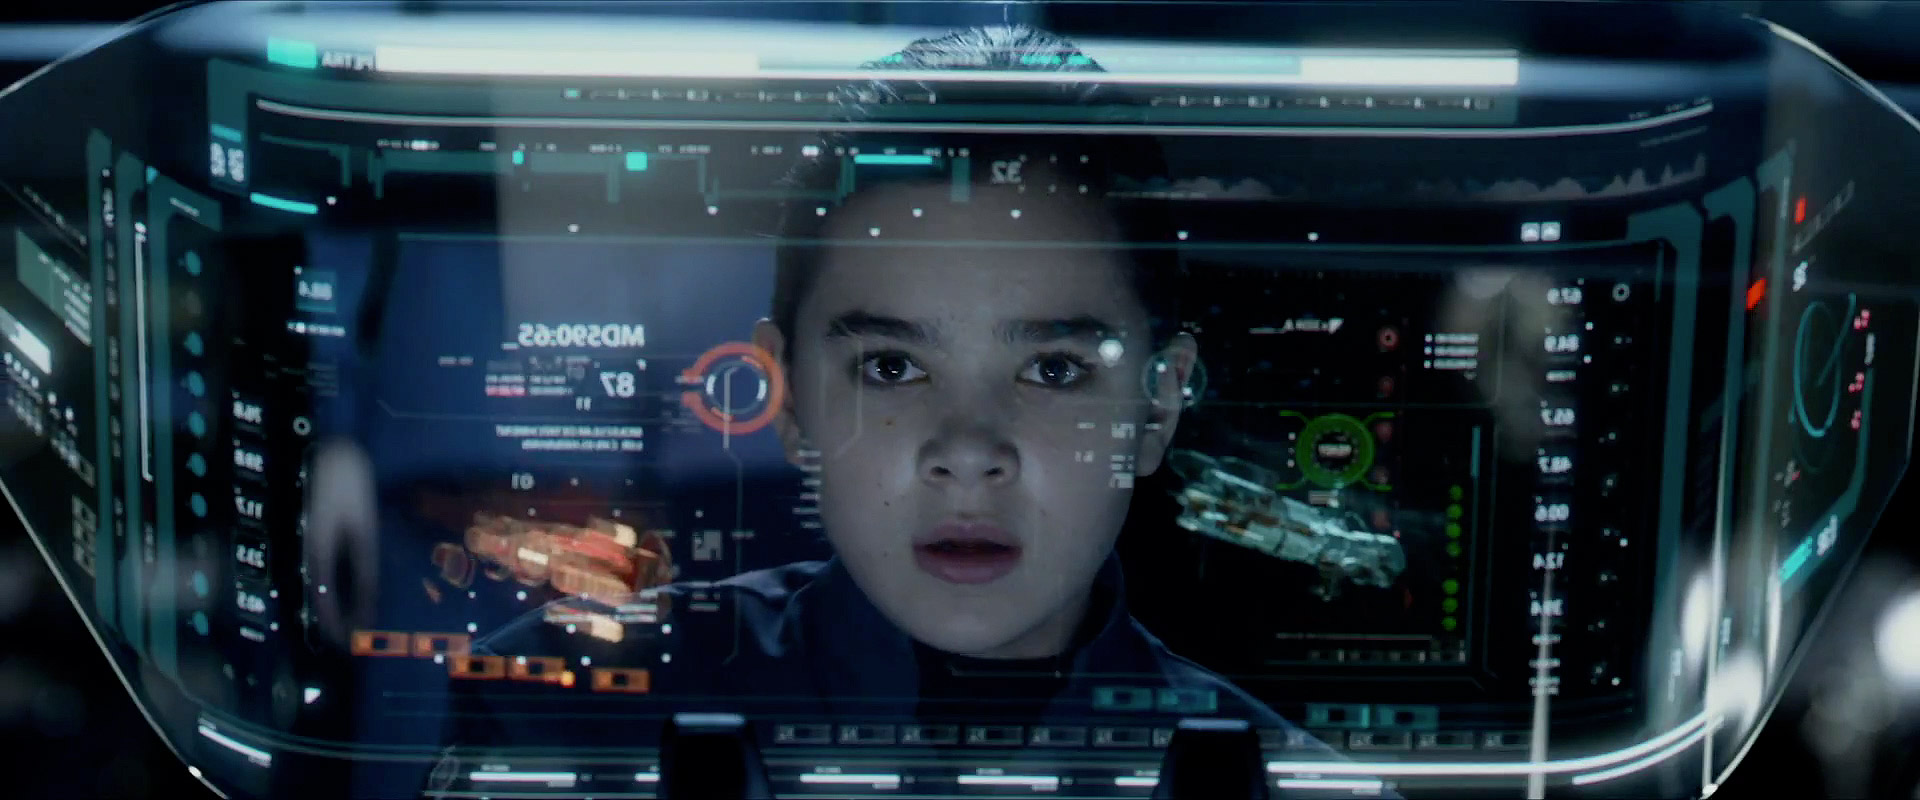 enders-game-preview-of-the-final-trailer-11.jpg